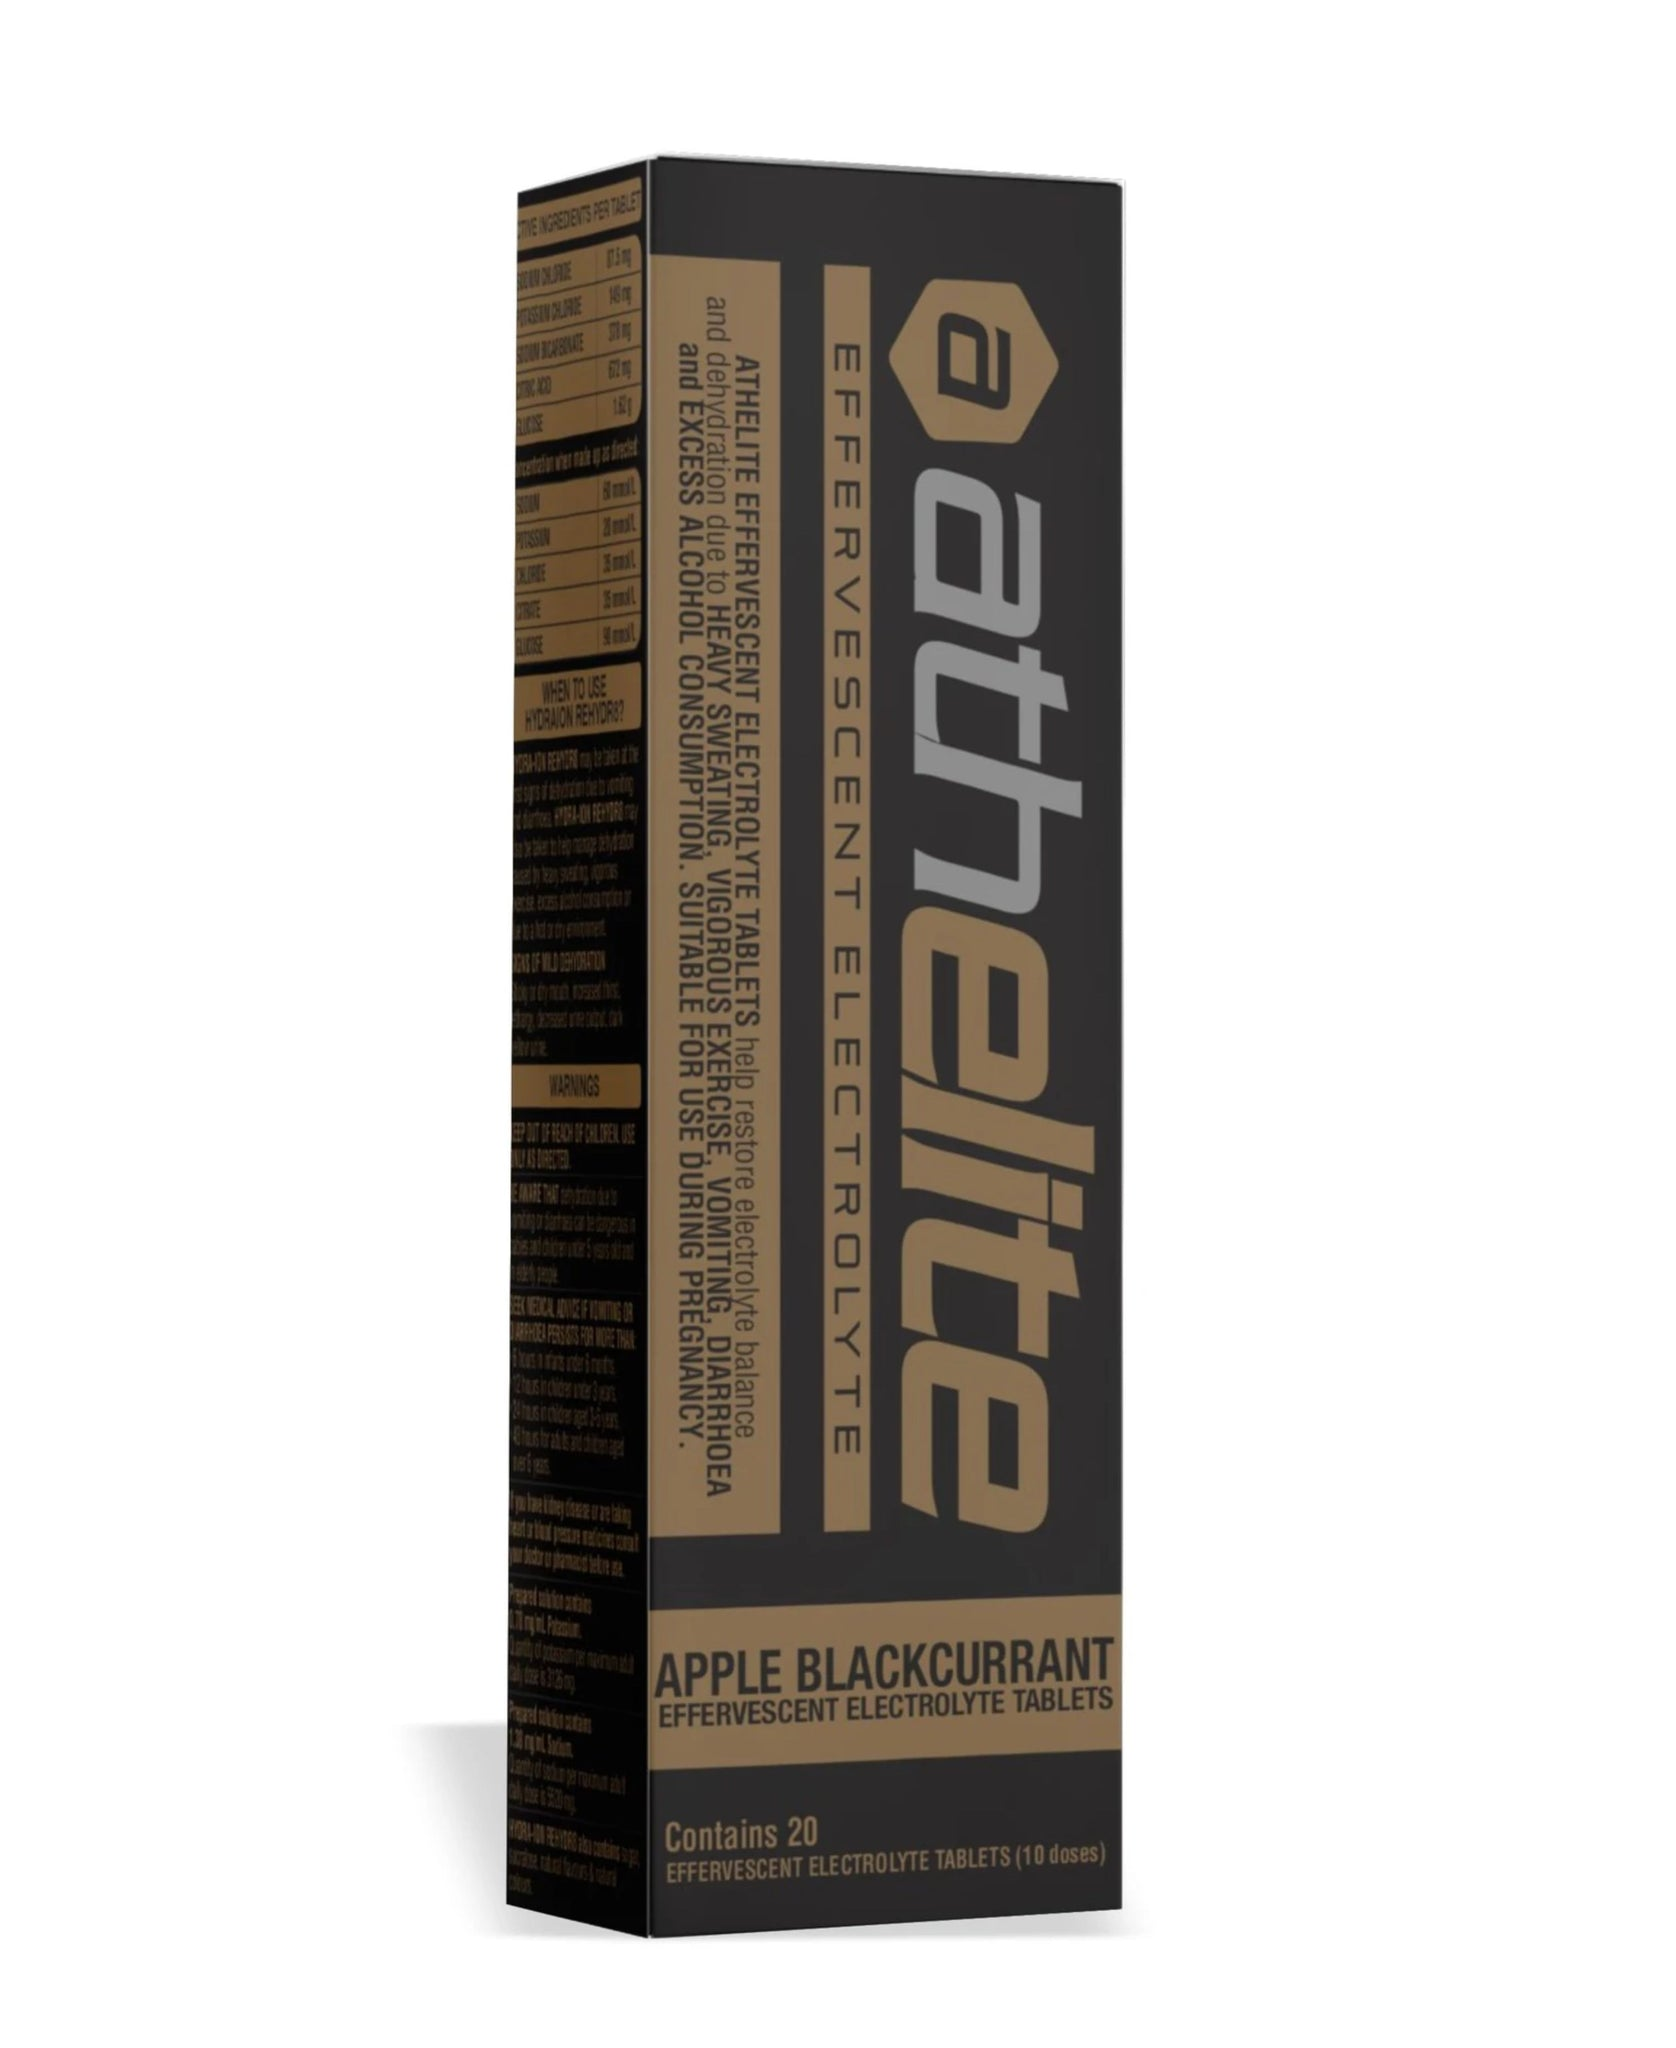 ATHELITE – REHYDR8 HYDRATION ELECTROLYTE EFFERVESCENT TABLETS (20)